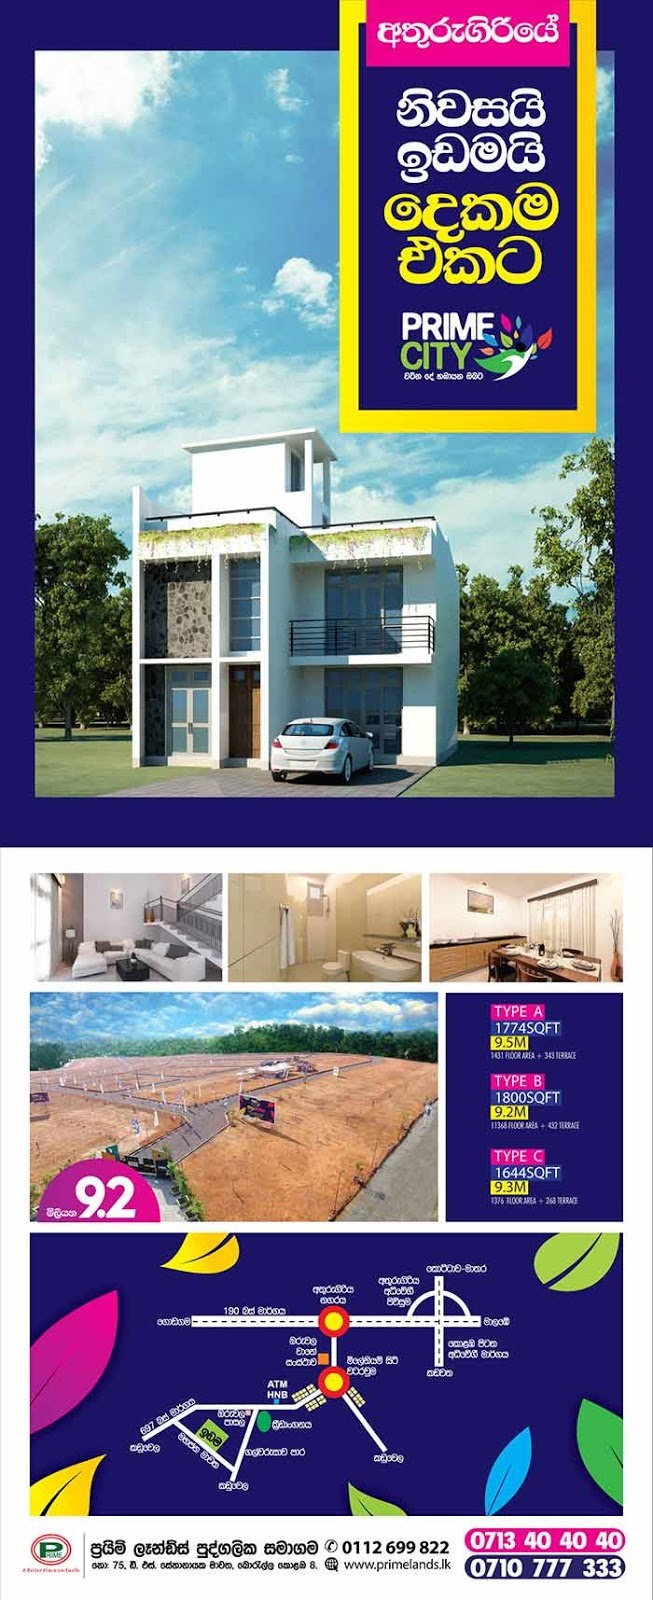 Prime Lands is involved in the purchase of land from across the country and developing the plots of land for sale. We provide our customers with the best solutions for land and housing needs, together with essential support services. Currently Prime Lands is the leading real estate services provider in Sri Lanka and is present in 16 out of the 25 districts with a portfolio of 1,000 successfully completed projects as of November 2013.